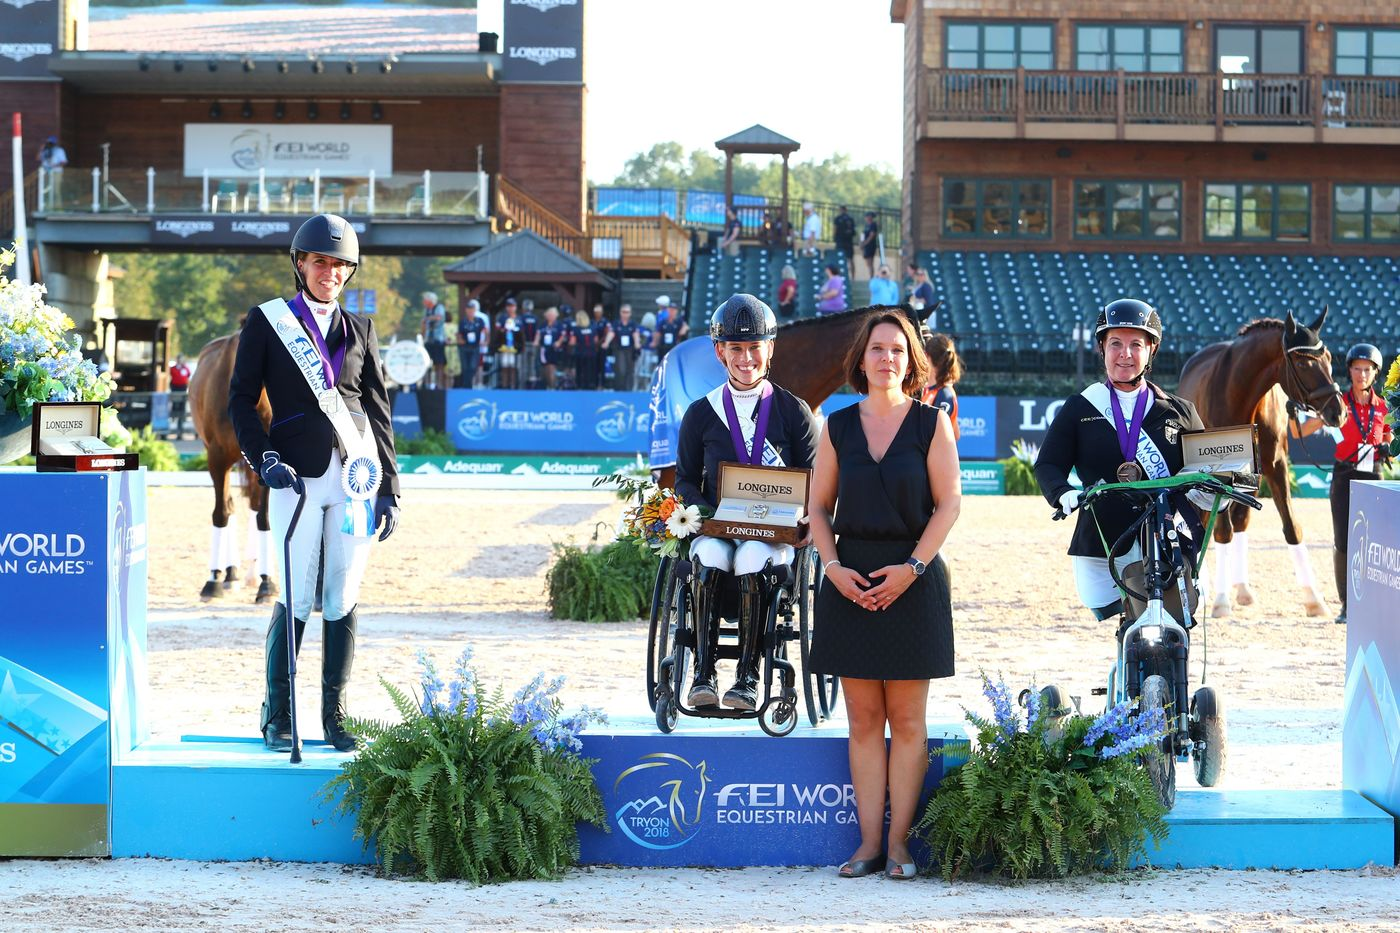 Longines Show Jumping Event: The FEI World Equestrian Games ended beautifully with Germany topping the medal table   7